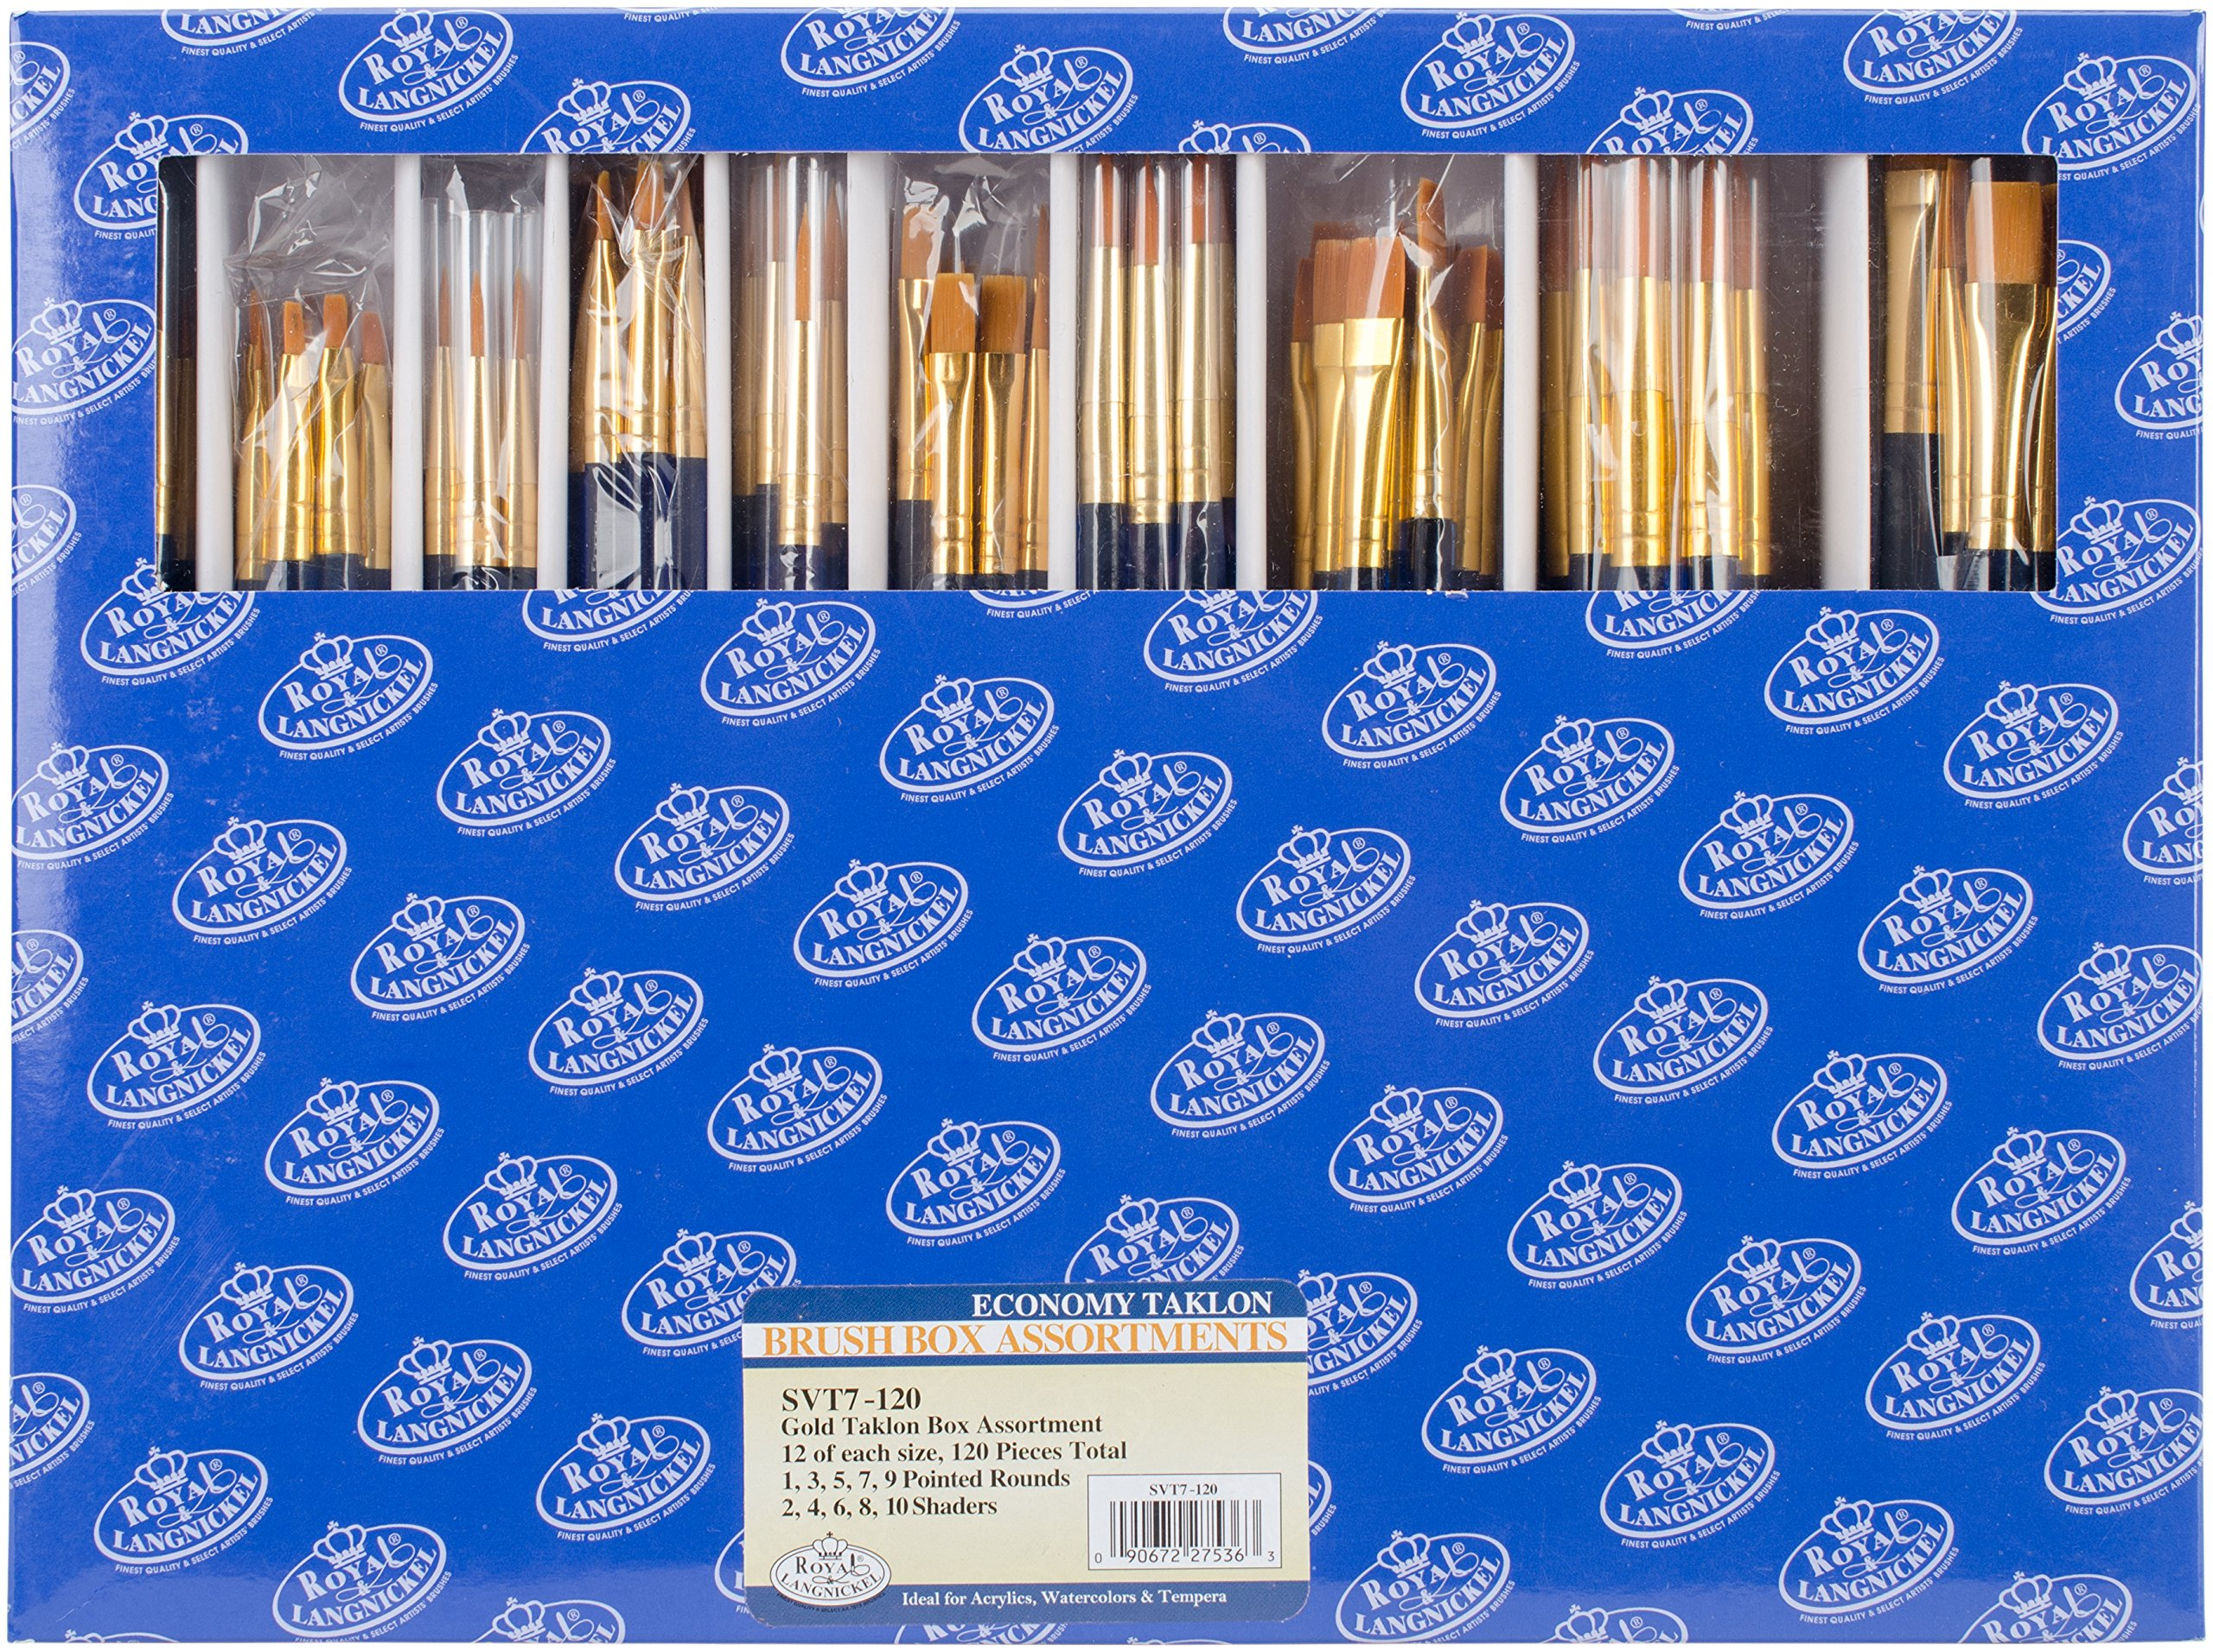 Royal & Langnickel SVT7-120 Classroom Assortment Rounds and Flats Golden Taklon Brush, 120-Piece by Royal & Langnickel